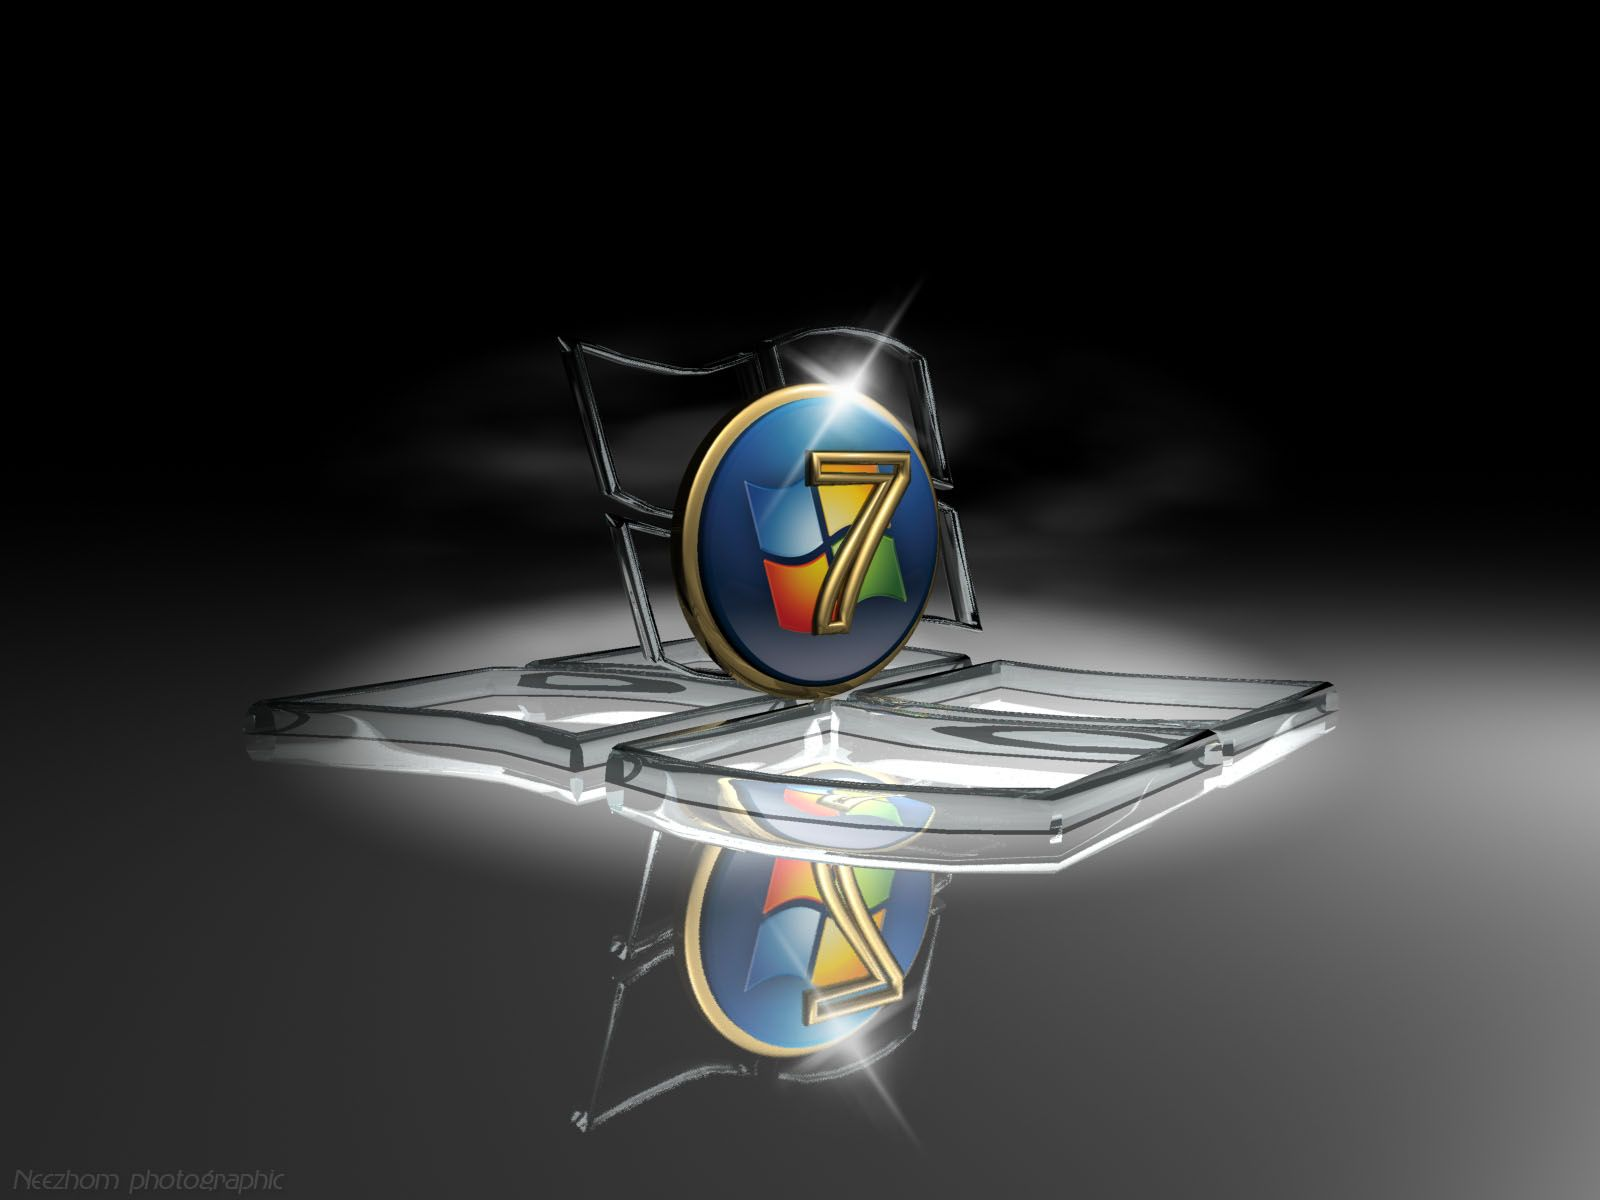 Windows 7 Wallpapers At Hdwallcloud